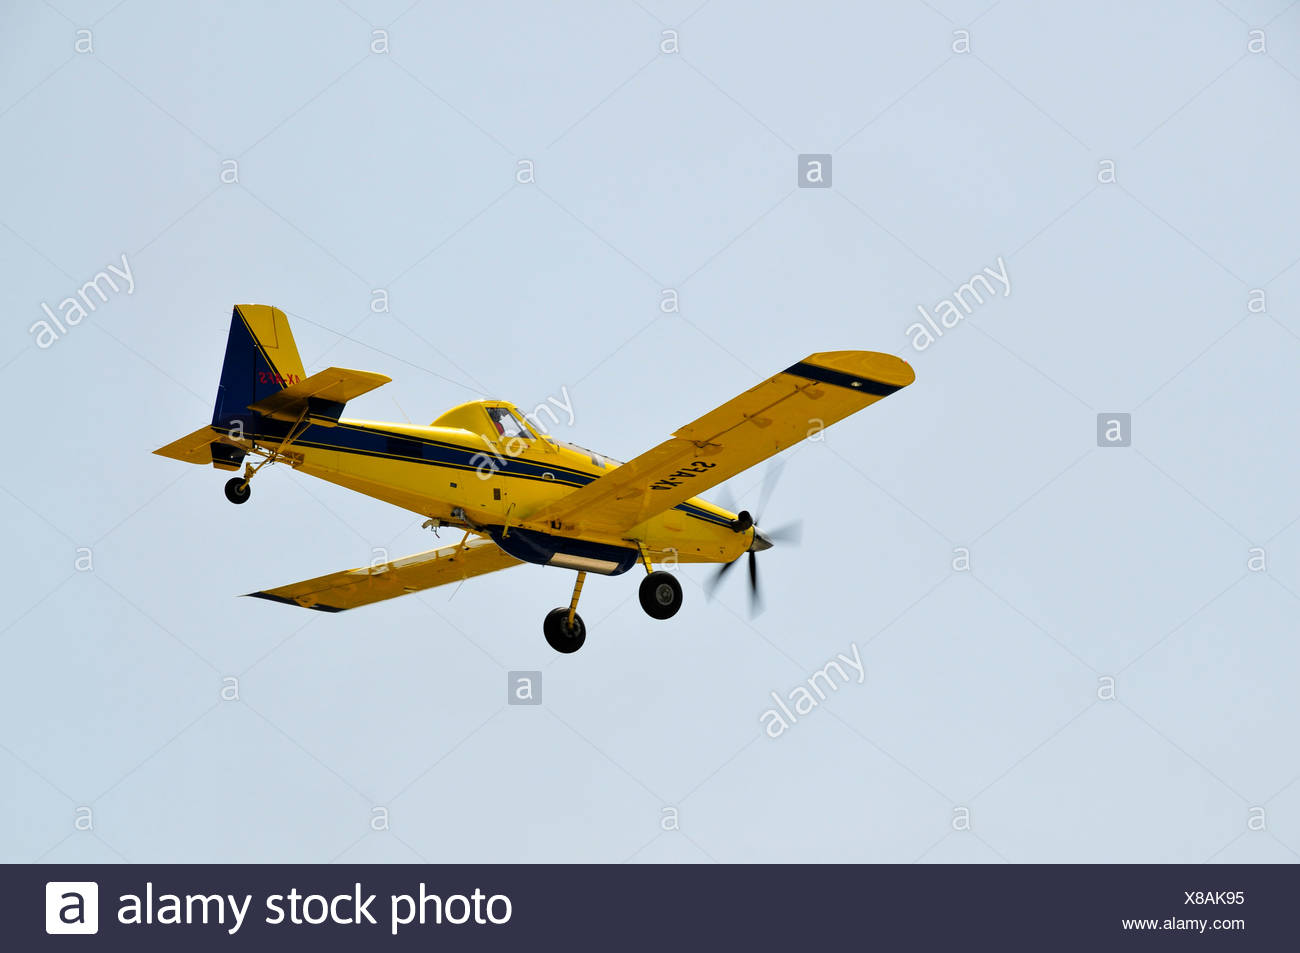 Chim-Nir Aviation Air Tractor AT-802 crop dusting plane used by the Israeli fire fighters to spread fire retardan - Stock Image